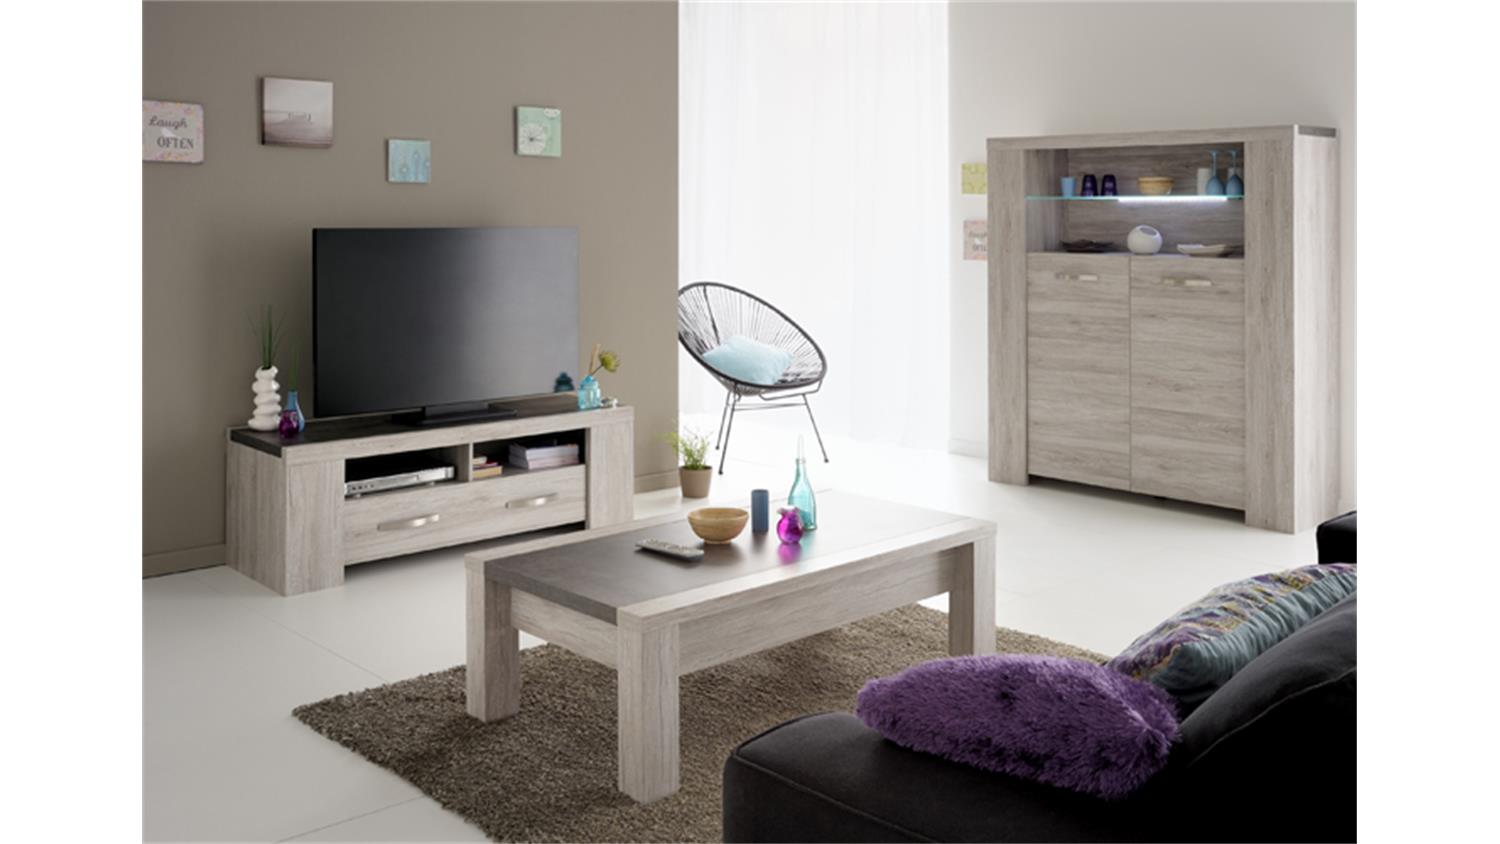 3tlg wohnzimmer set malone 41 in eiche steinoptik grau. Black Bedroom Furniture Sets. Home Design Ideas